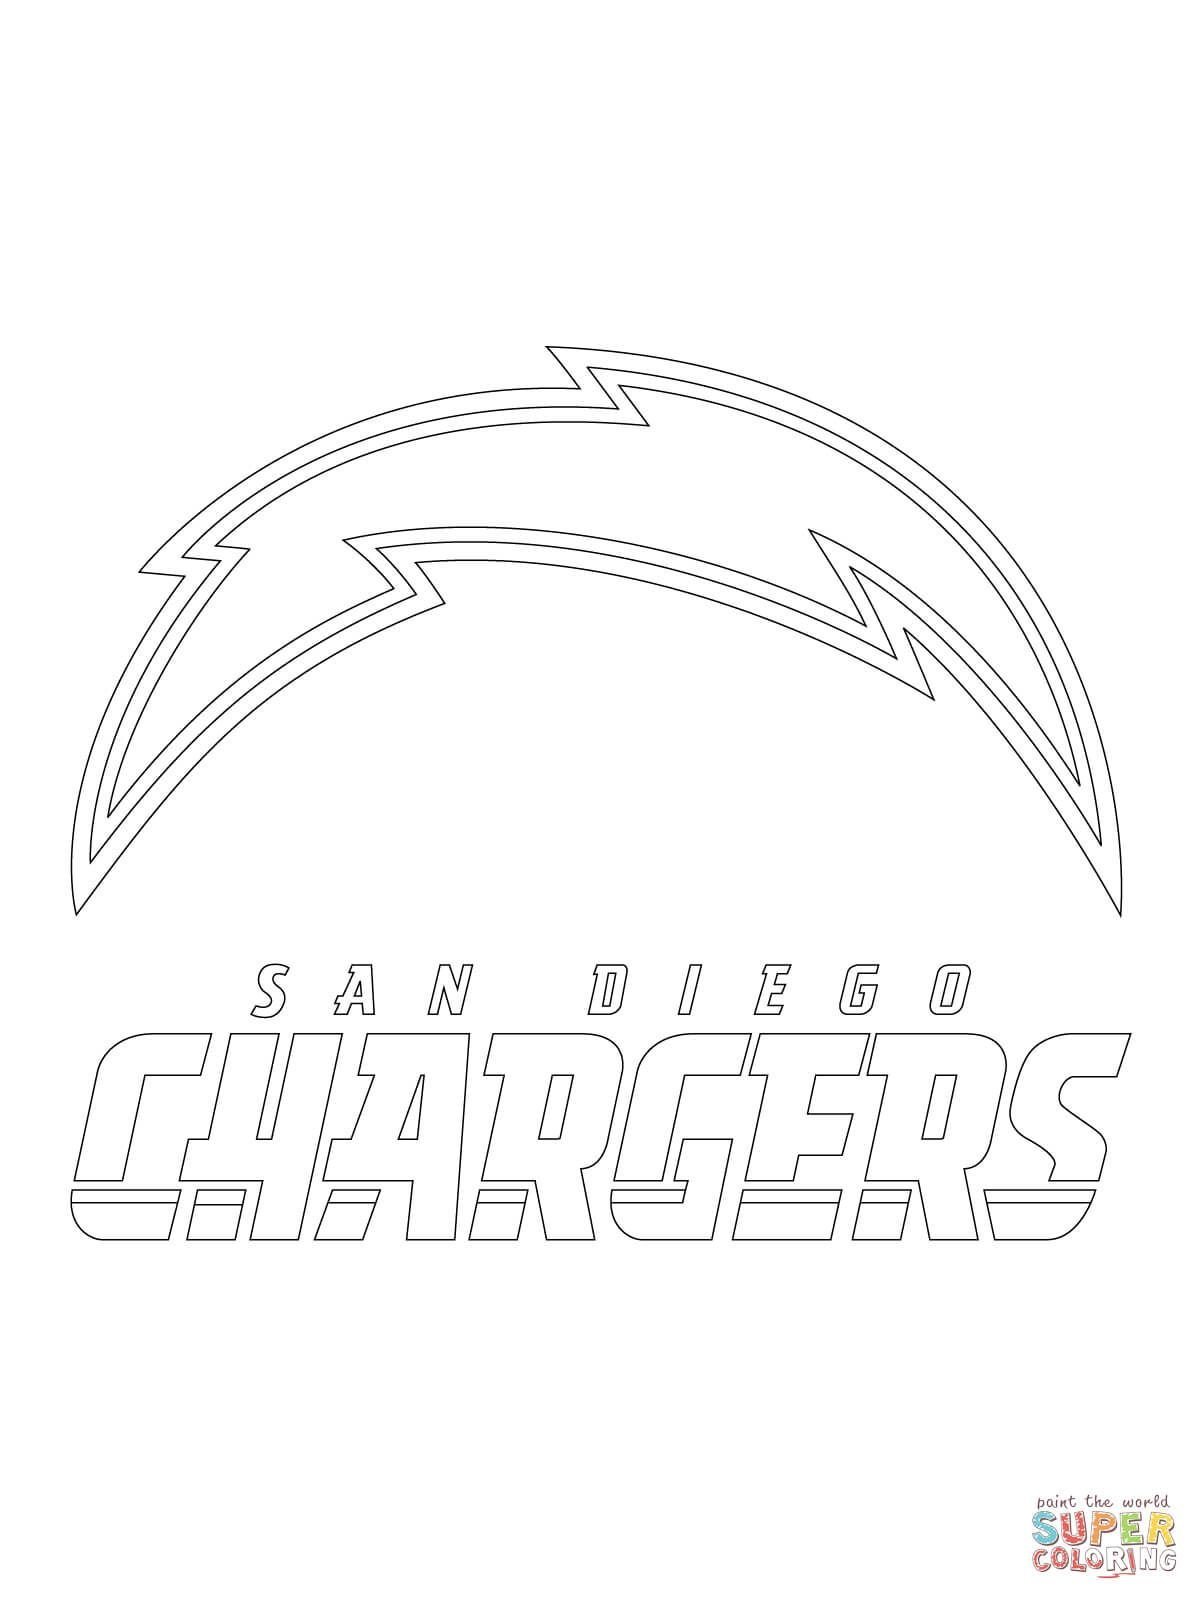 san diego coloring pages san diego coloring download san diego coloring for free 2019 coloring diego san pages